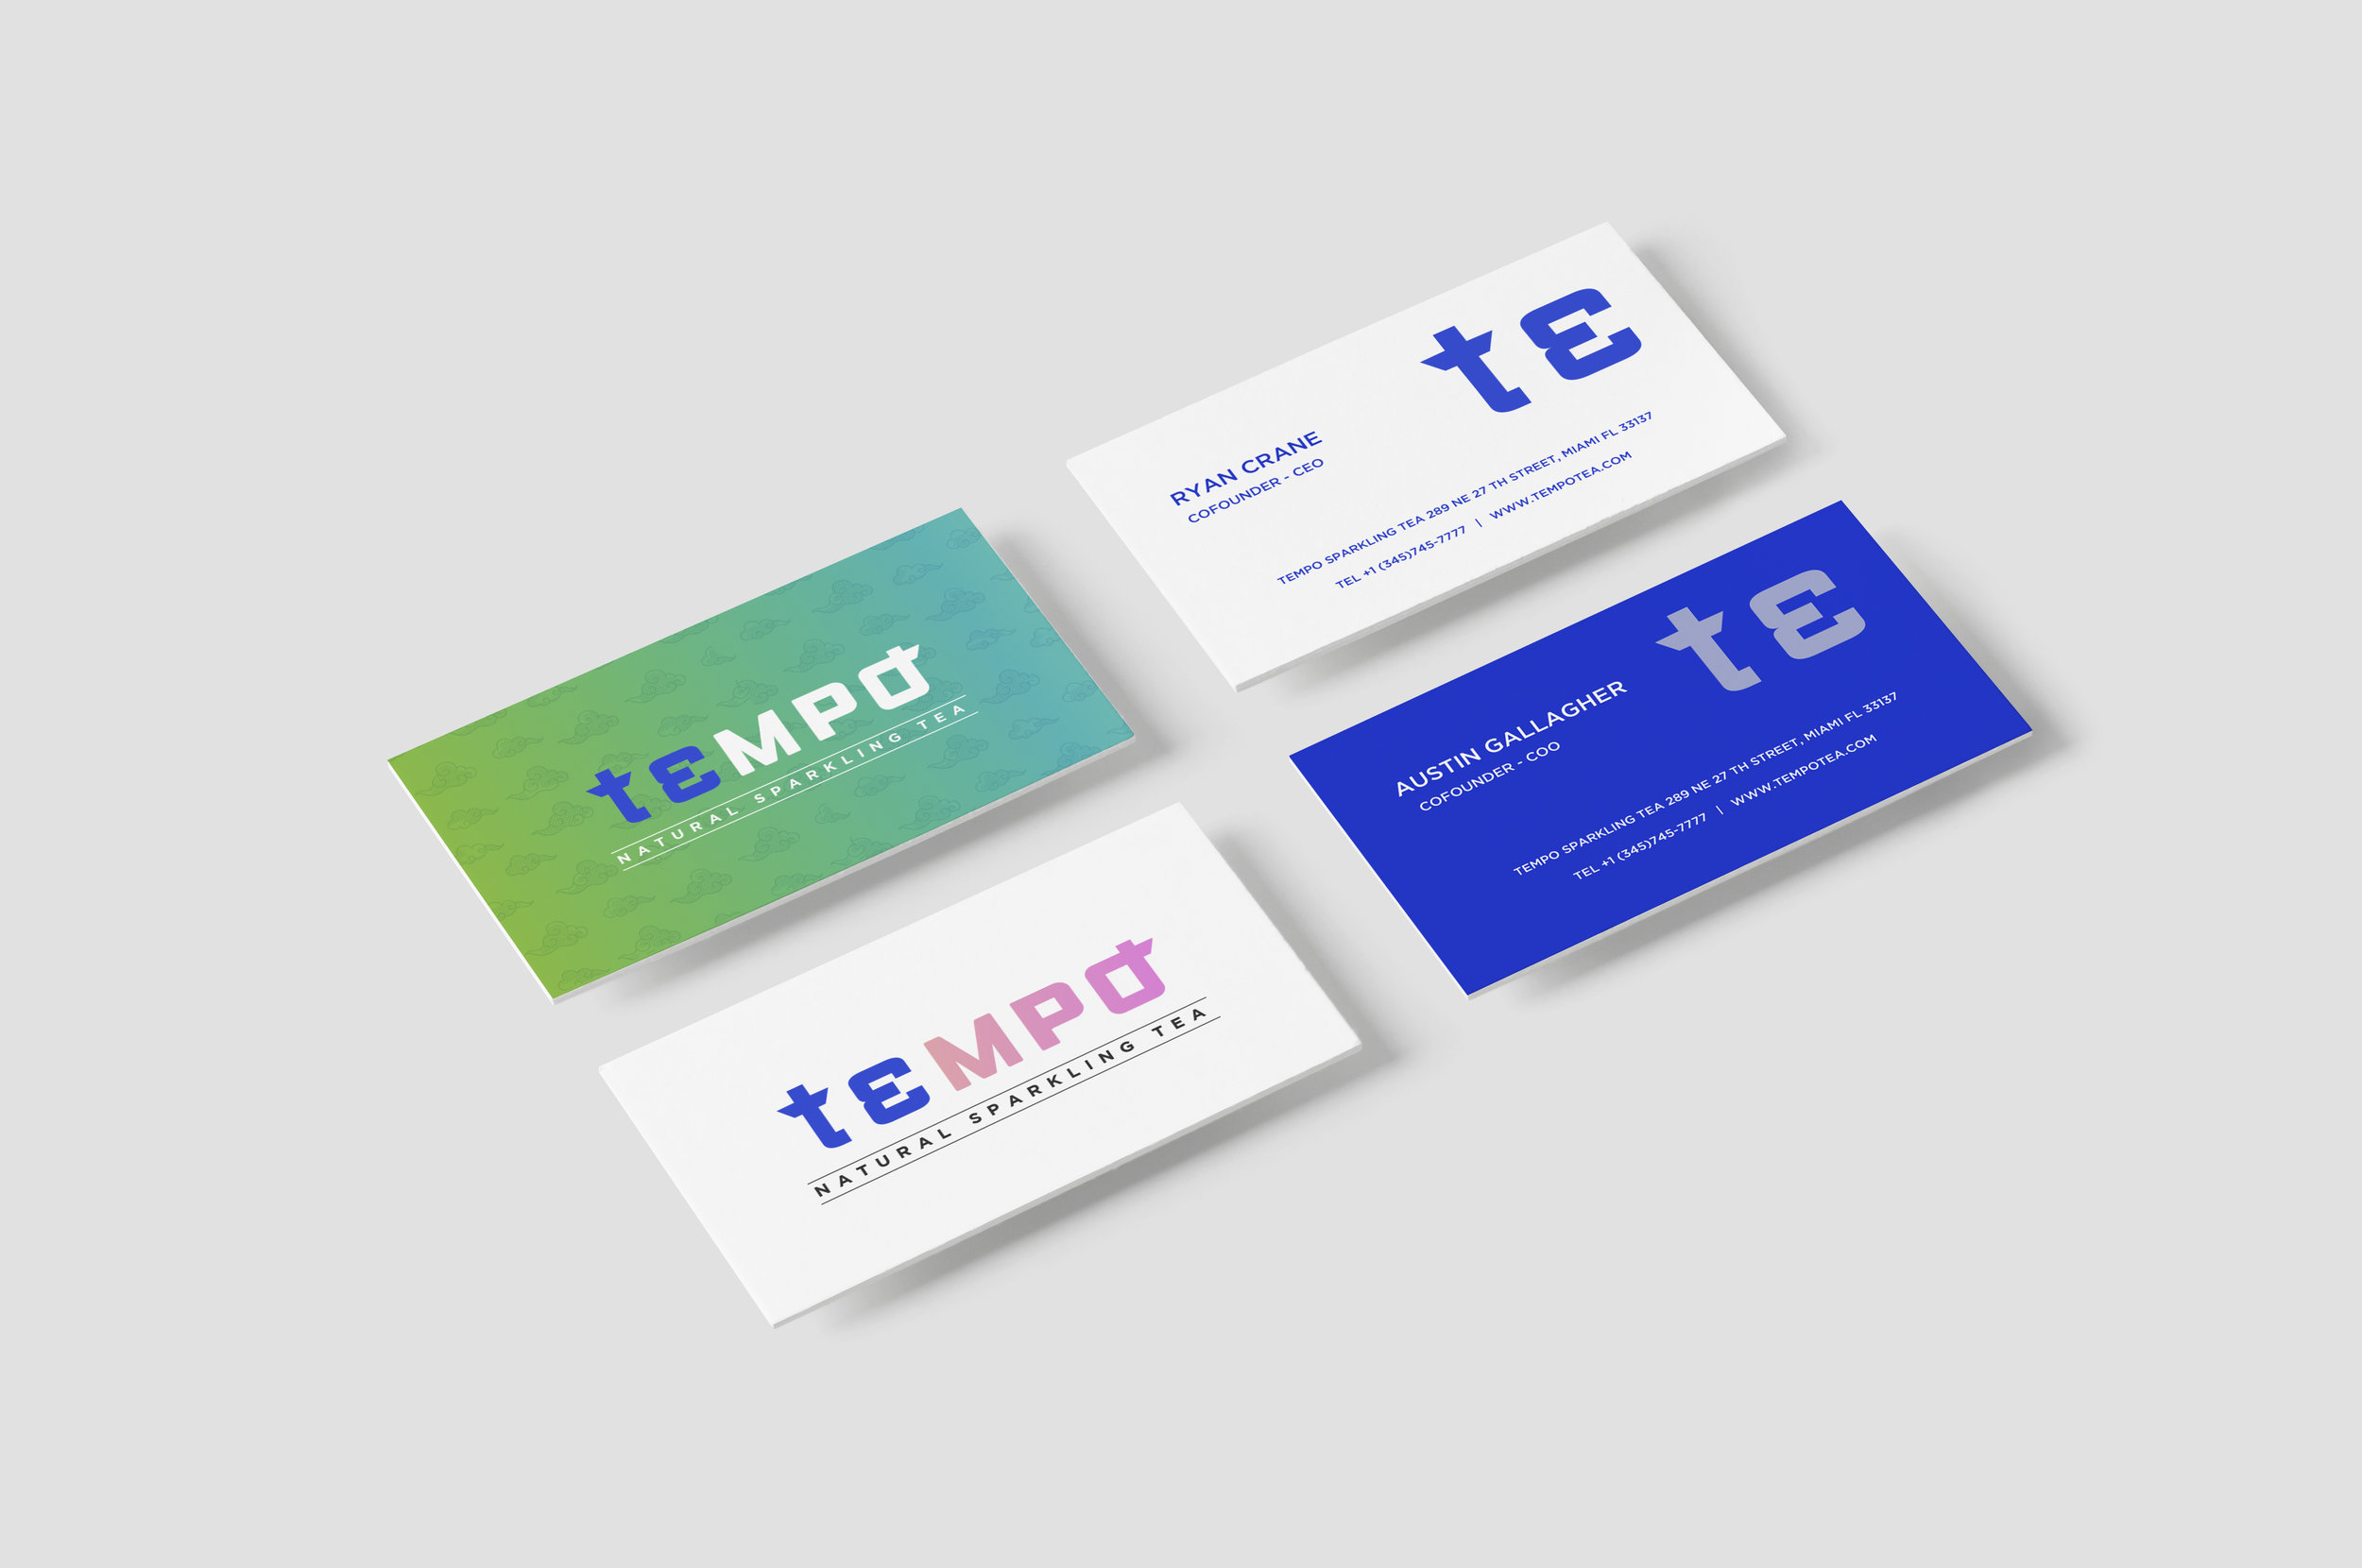 08_Corporate_Stationery_Mockup.jpg